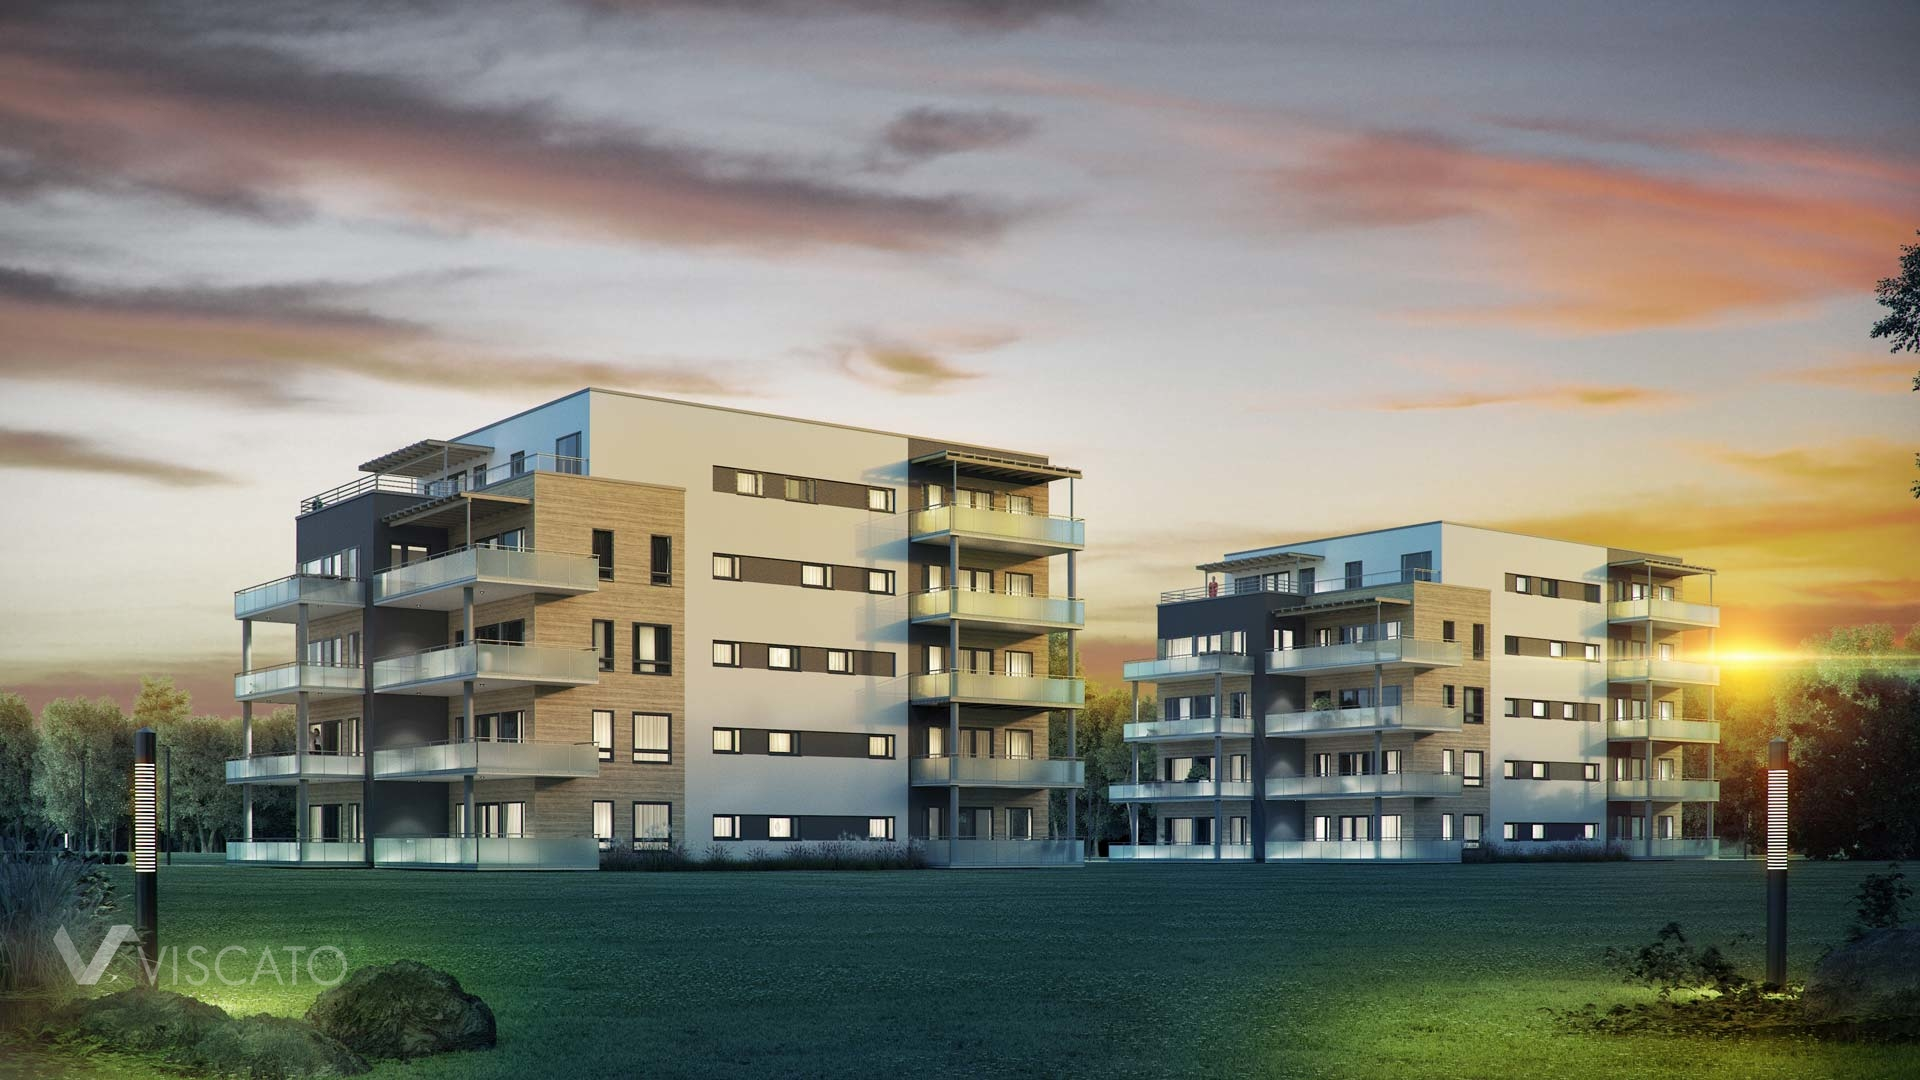 3d architectural visualization of a multi family estate building- golden hour view